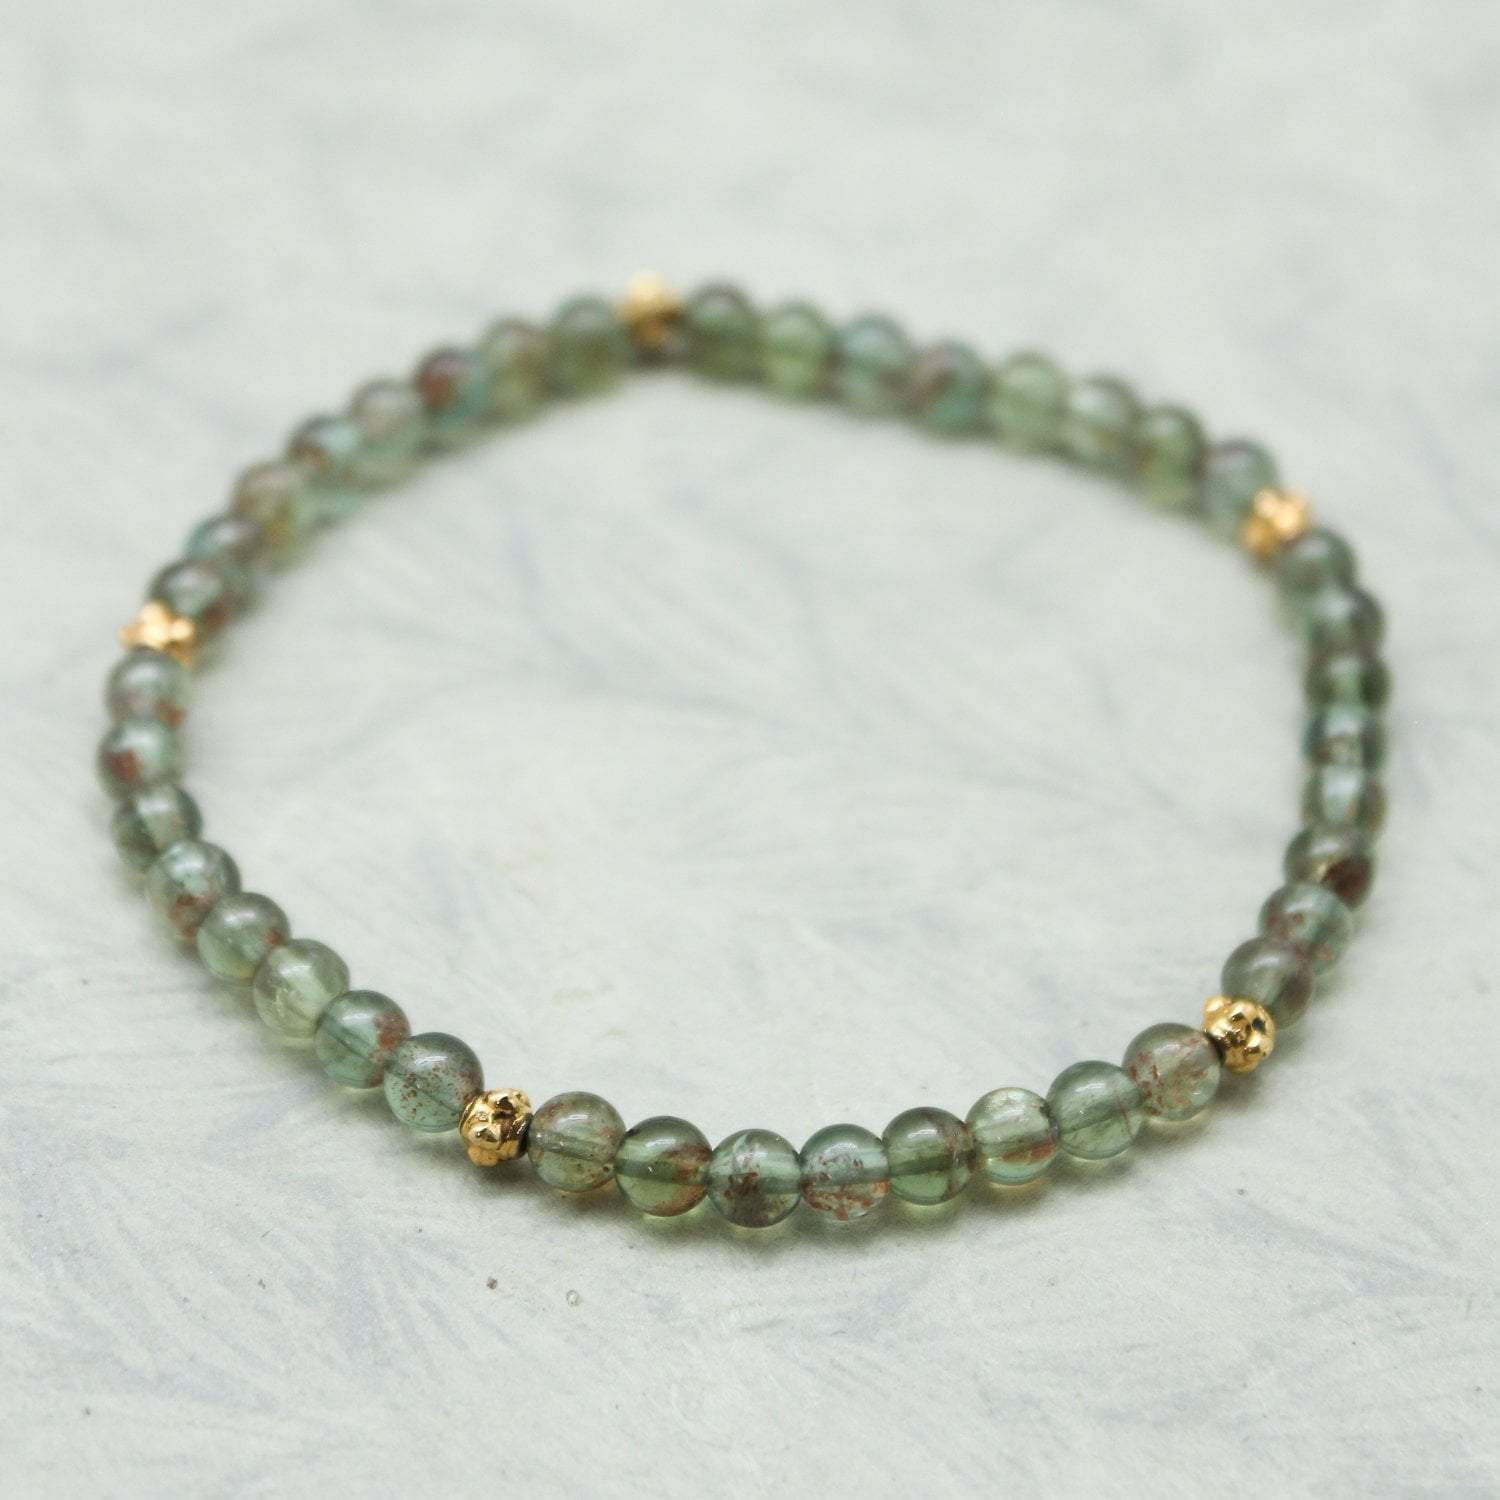 Bracelets Small Green Apatite Stackable Bracelet JB805.SM